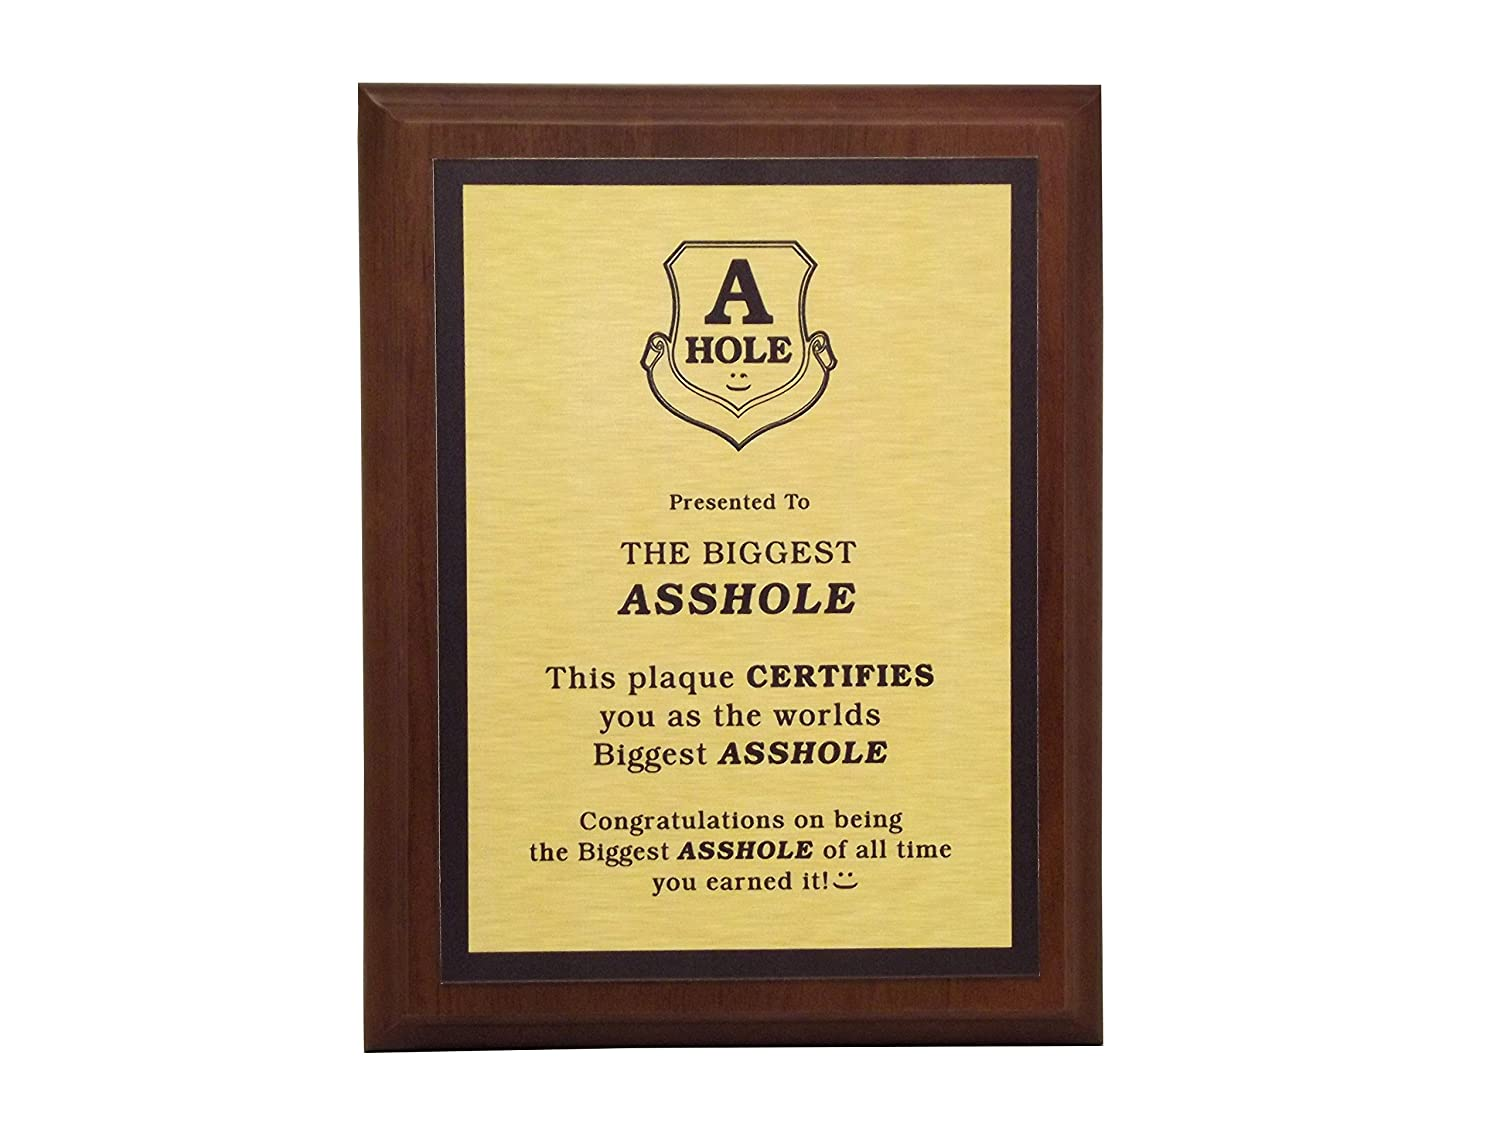 Amazon.com : Aahs Engraving Worlds Greatest Plaques (The Biggest Asshole,  Gold) : Office Products